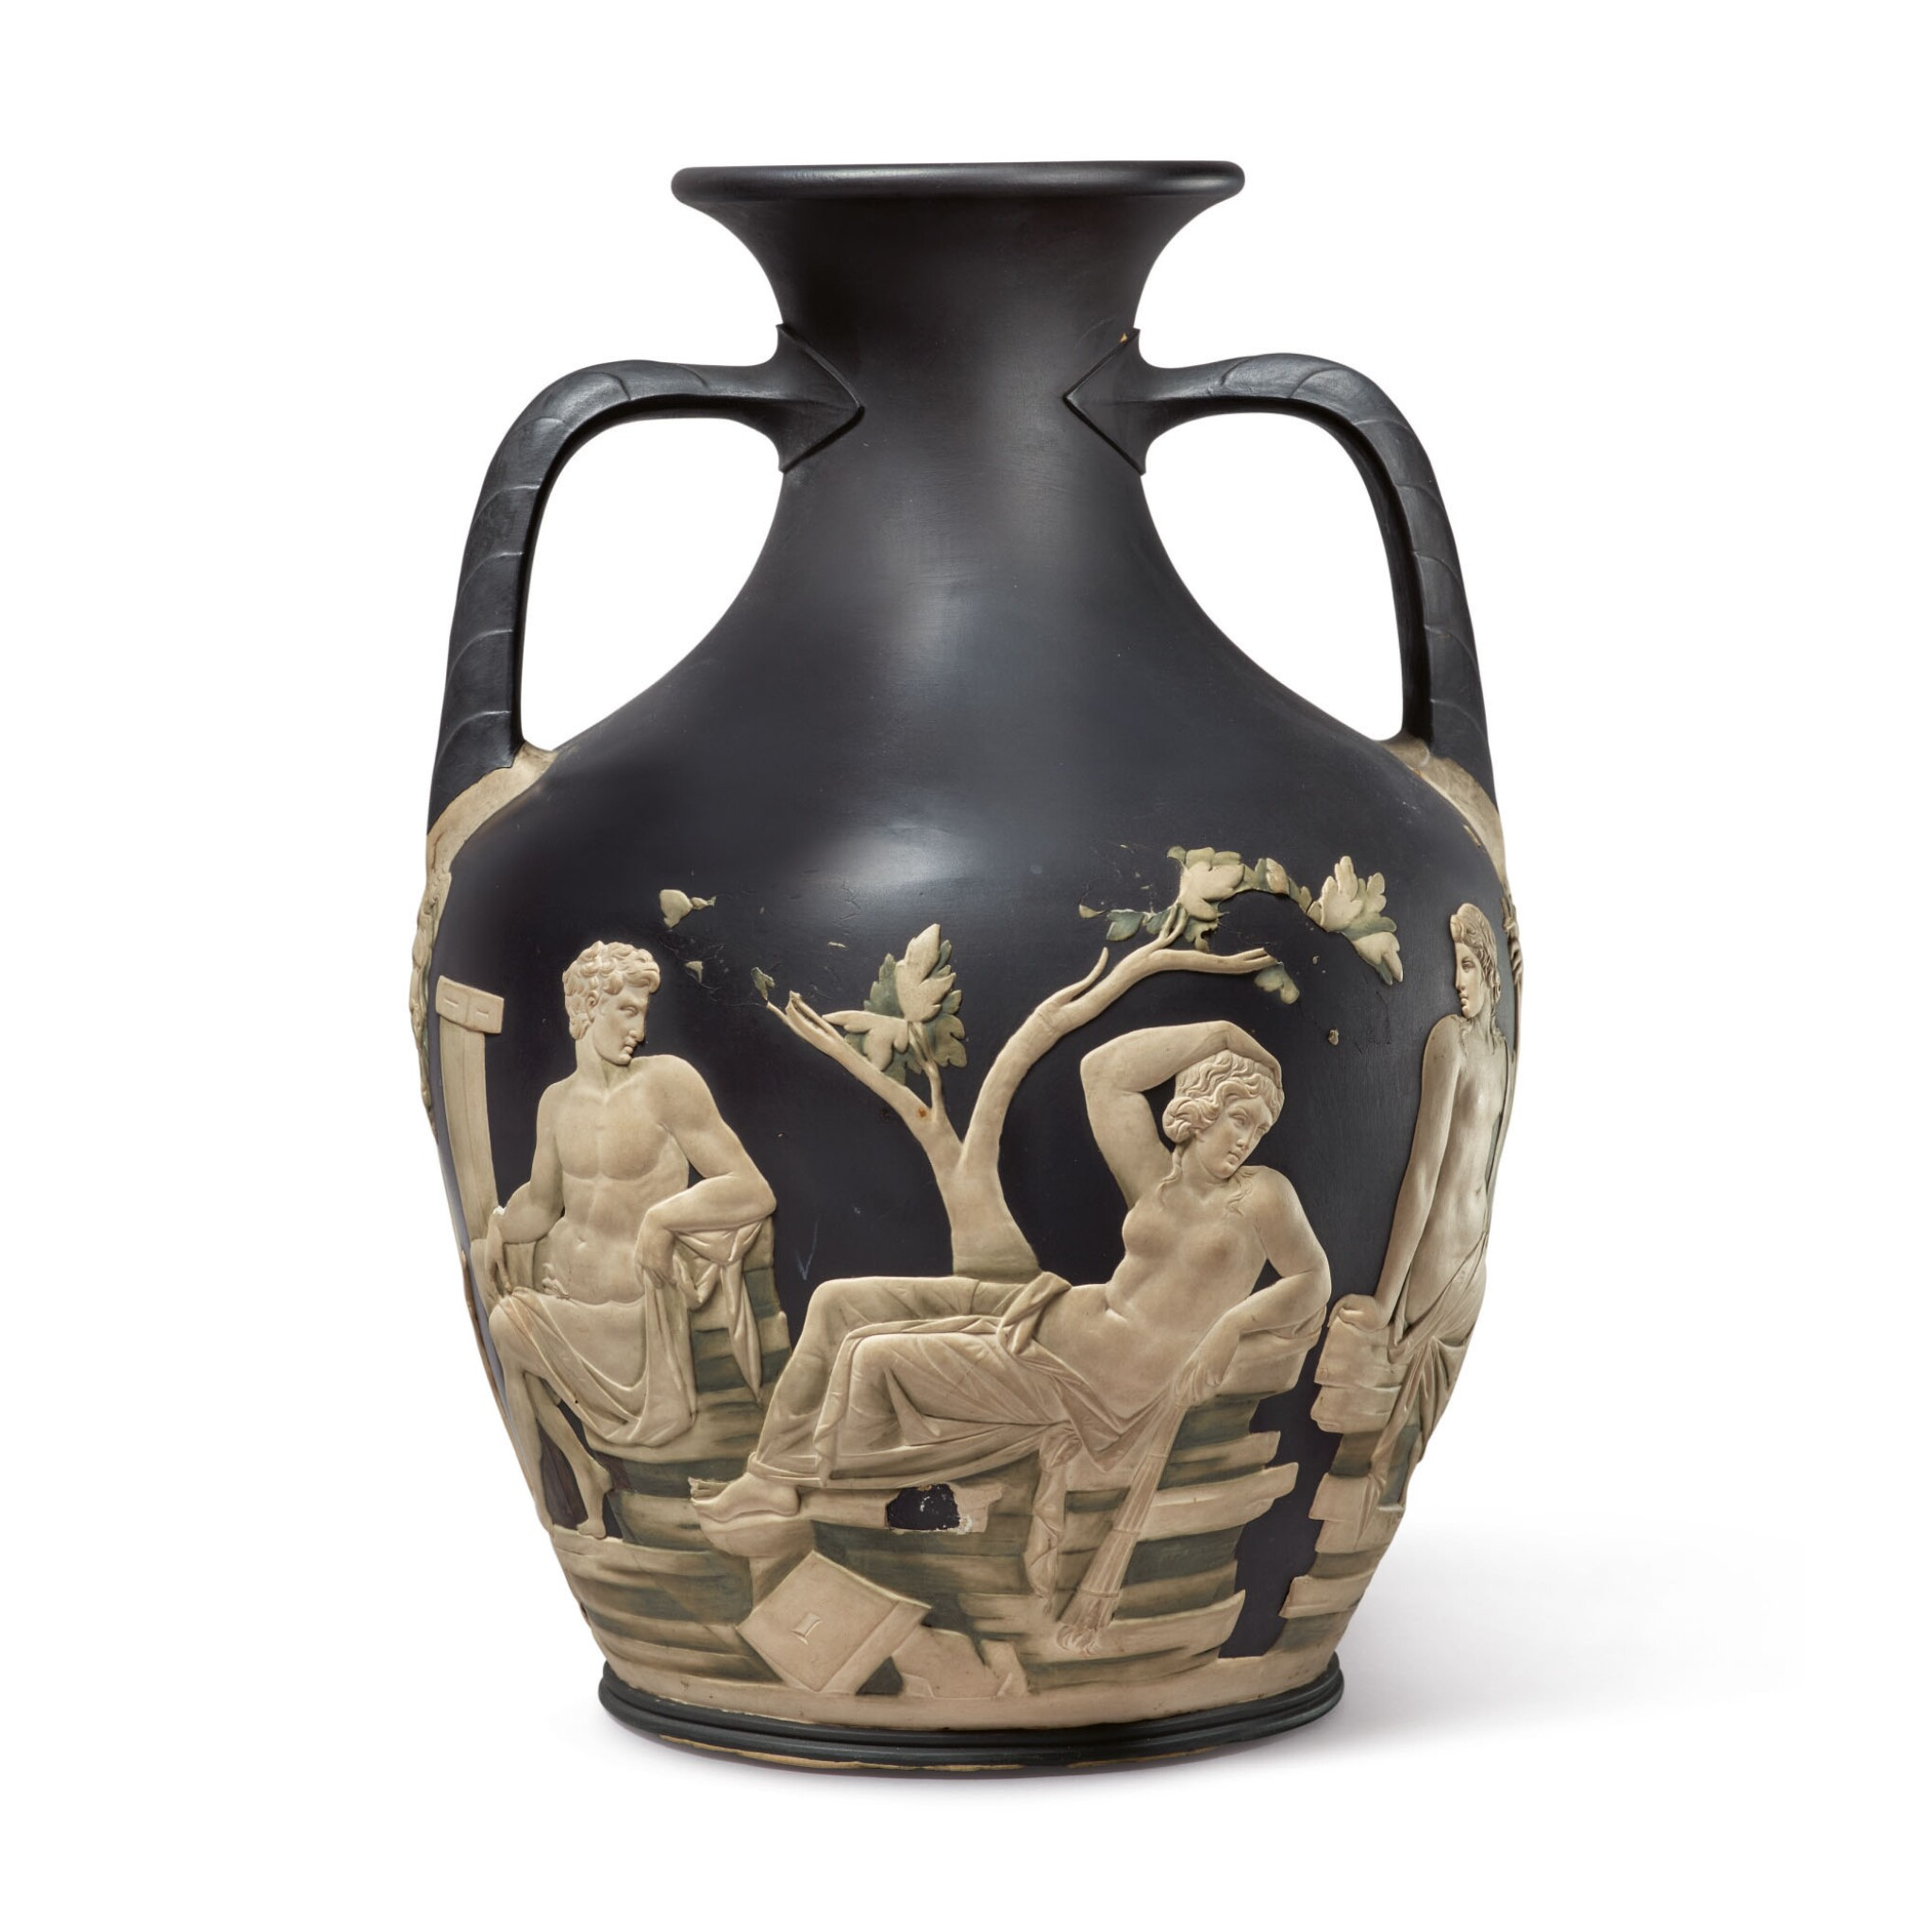 View 1 of Lot 139. A WEDGWOOD BLACK AND WHITE JASPERWARE 'PORTLAND VASE' LATE 18TH CENTURY .